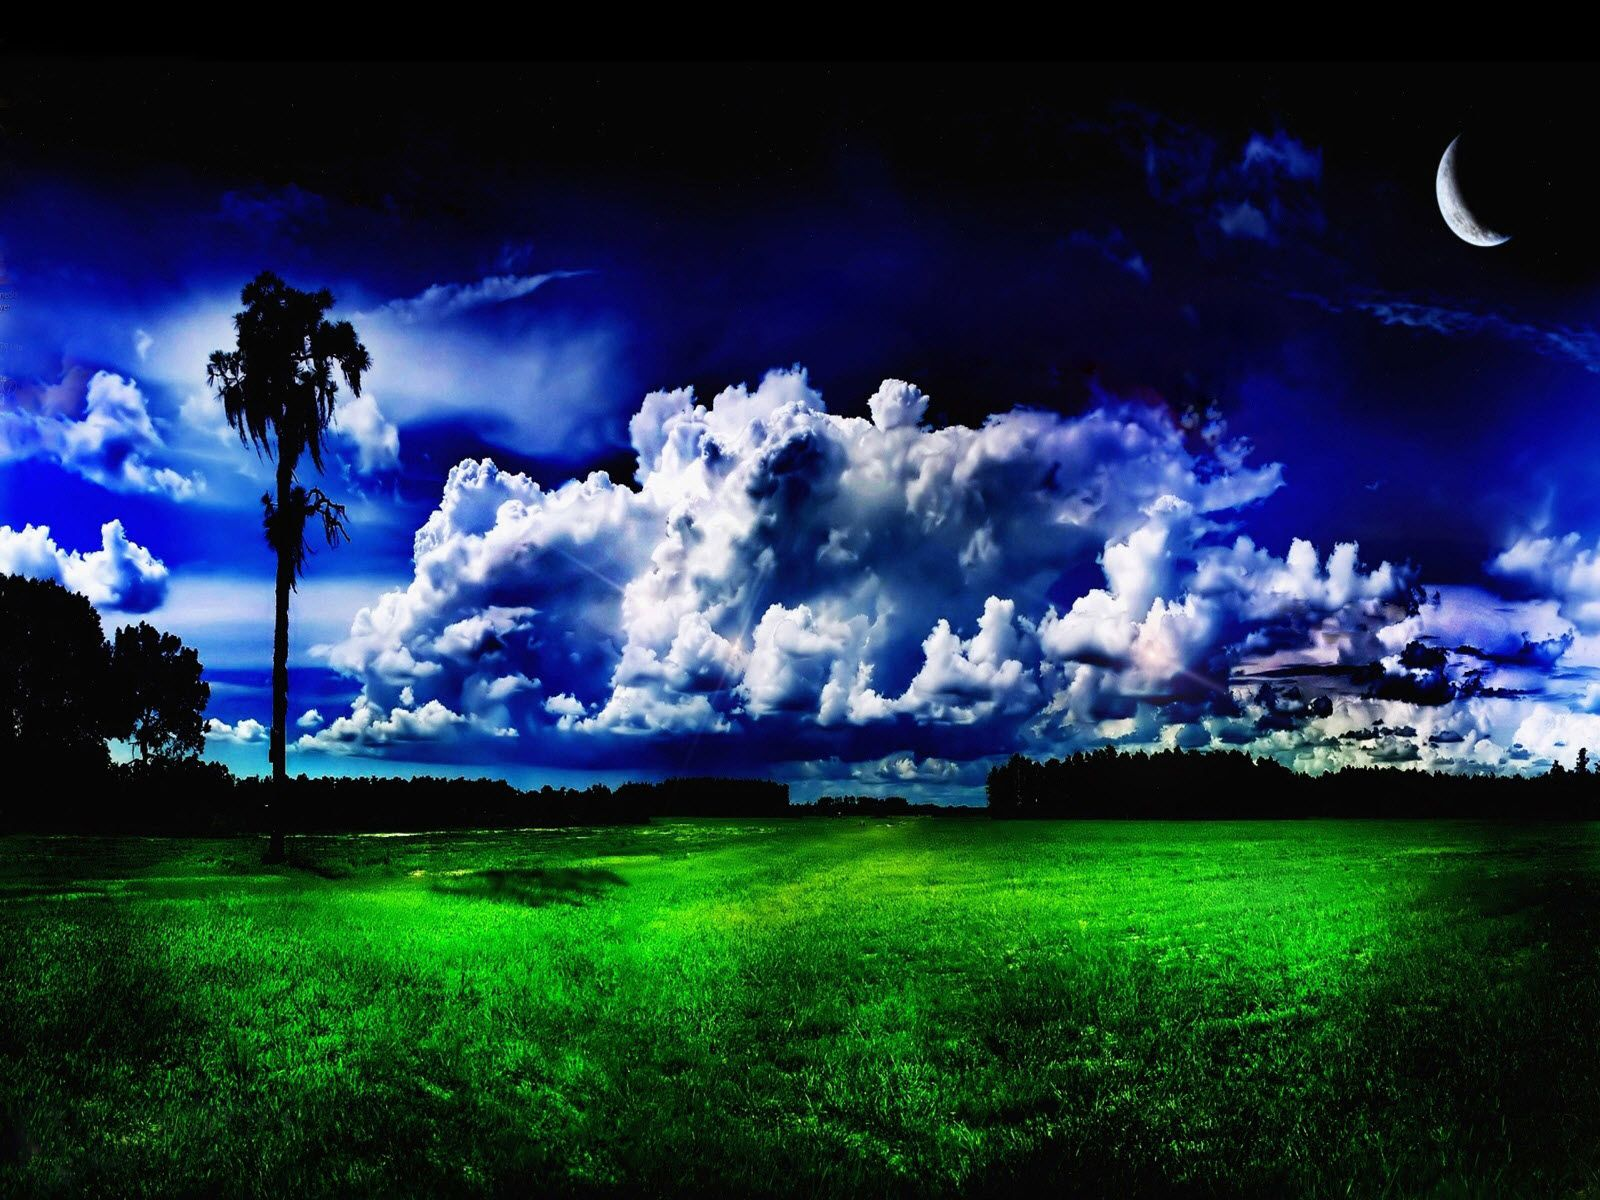 World Best Wallpapers Wallpapers Com Clouds Nature Wallpaper Best Wallpaper Hd